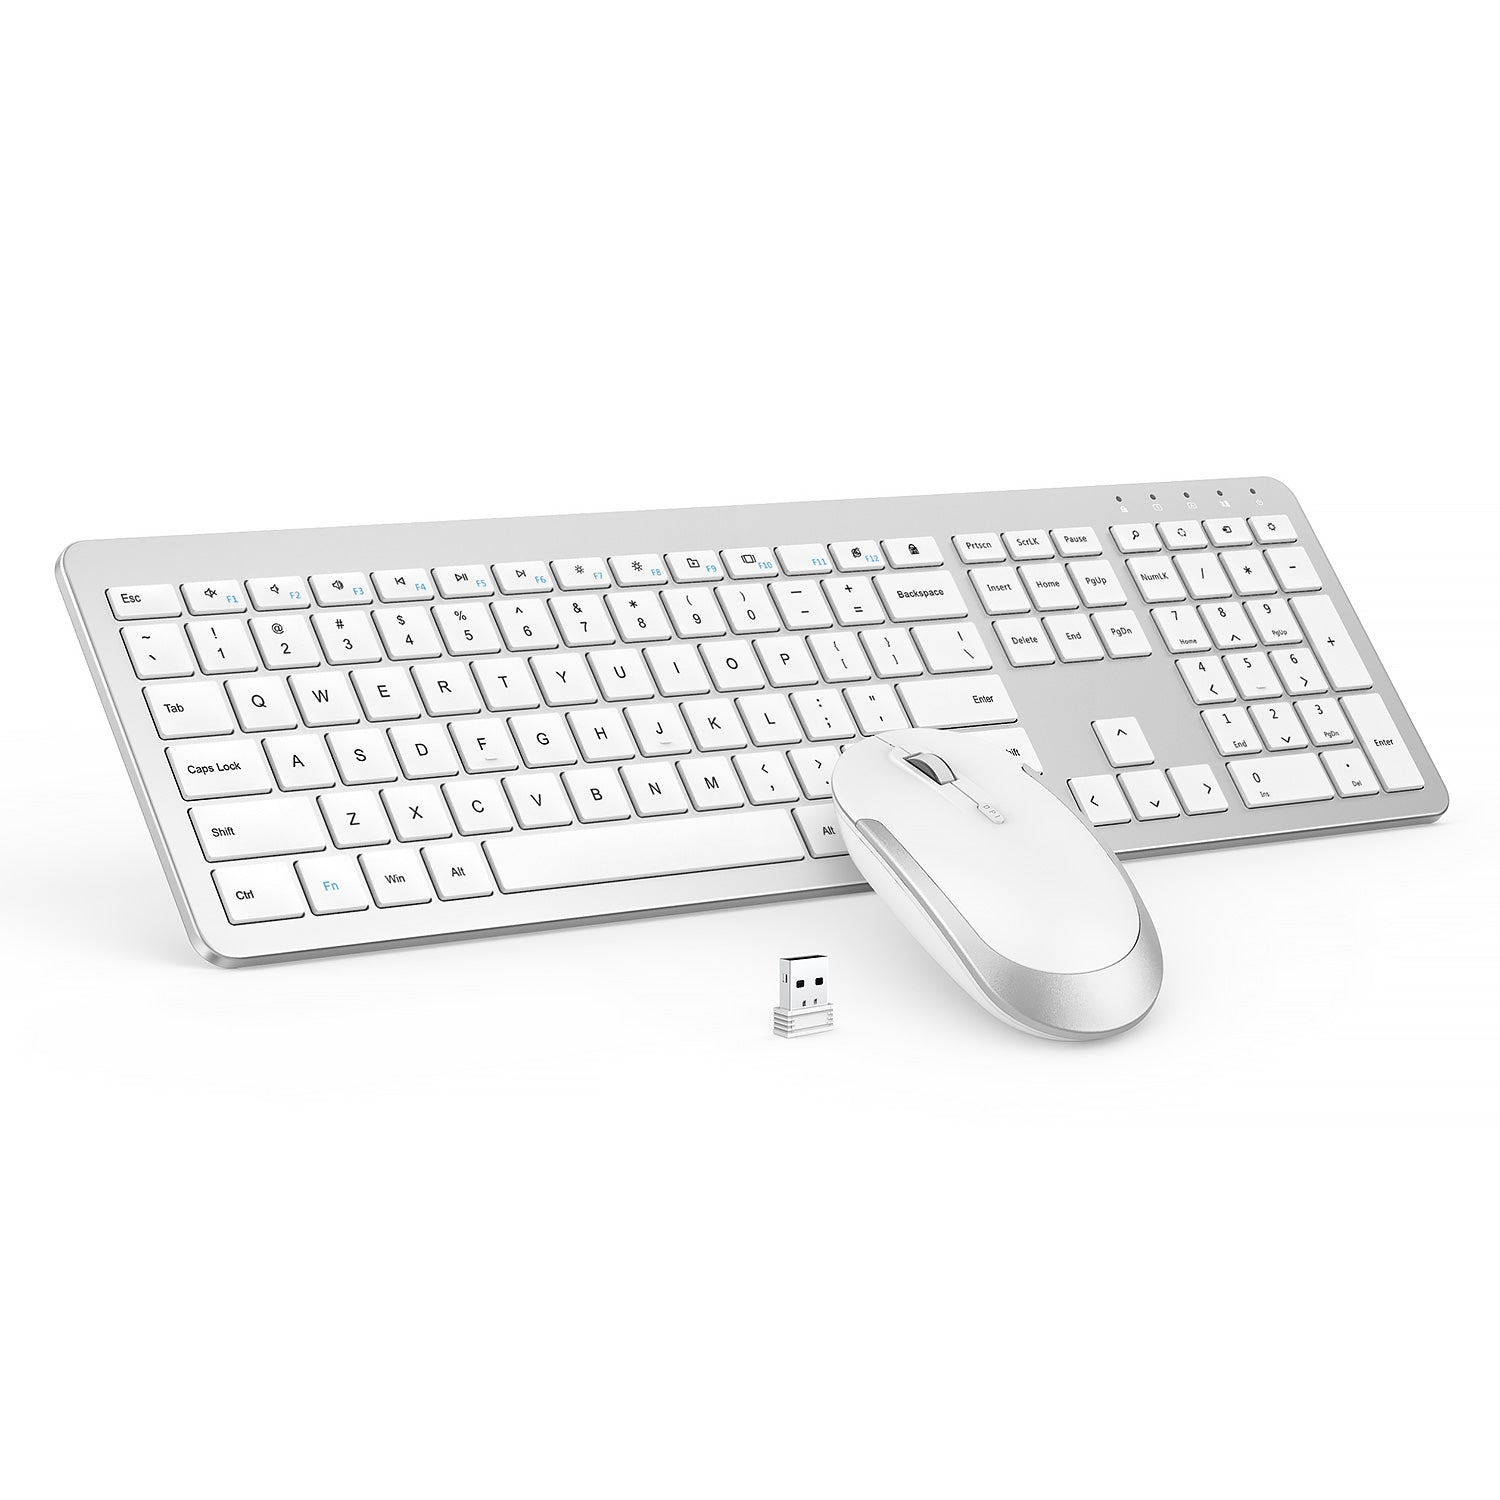 WGJP-038 Wireless Keyboard and Mouse Combo